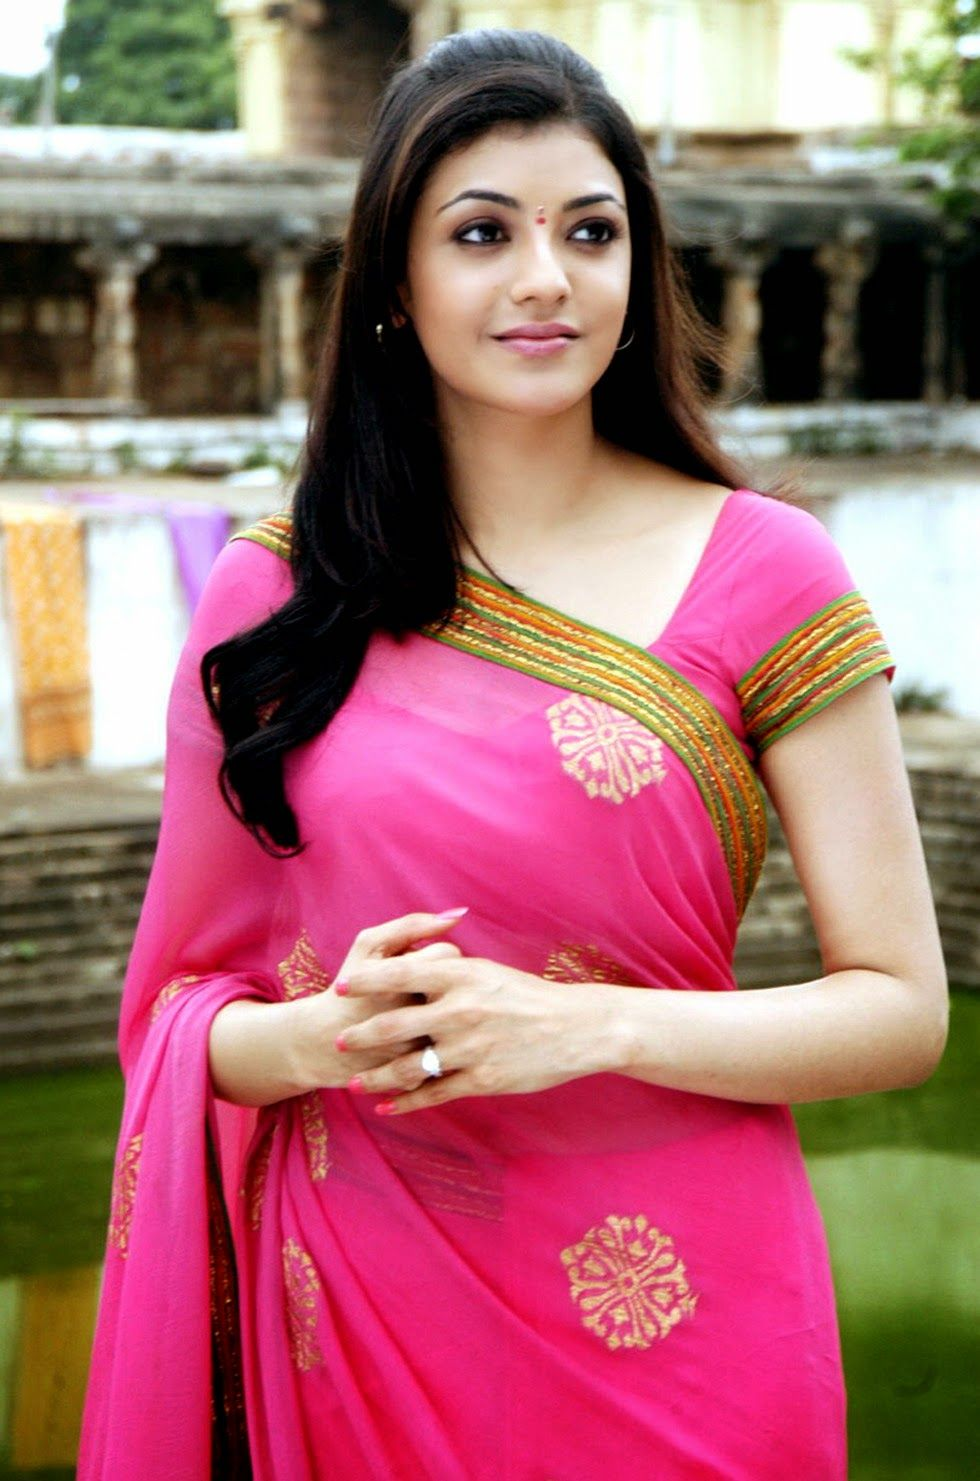 Wallpaper download kajal agarwal - Kajal Agarwal Wallpapers Free Download Image Wallpapers